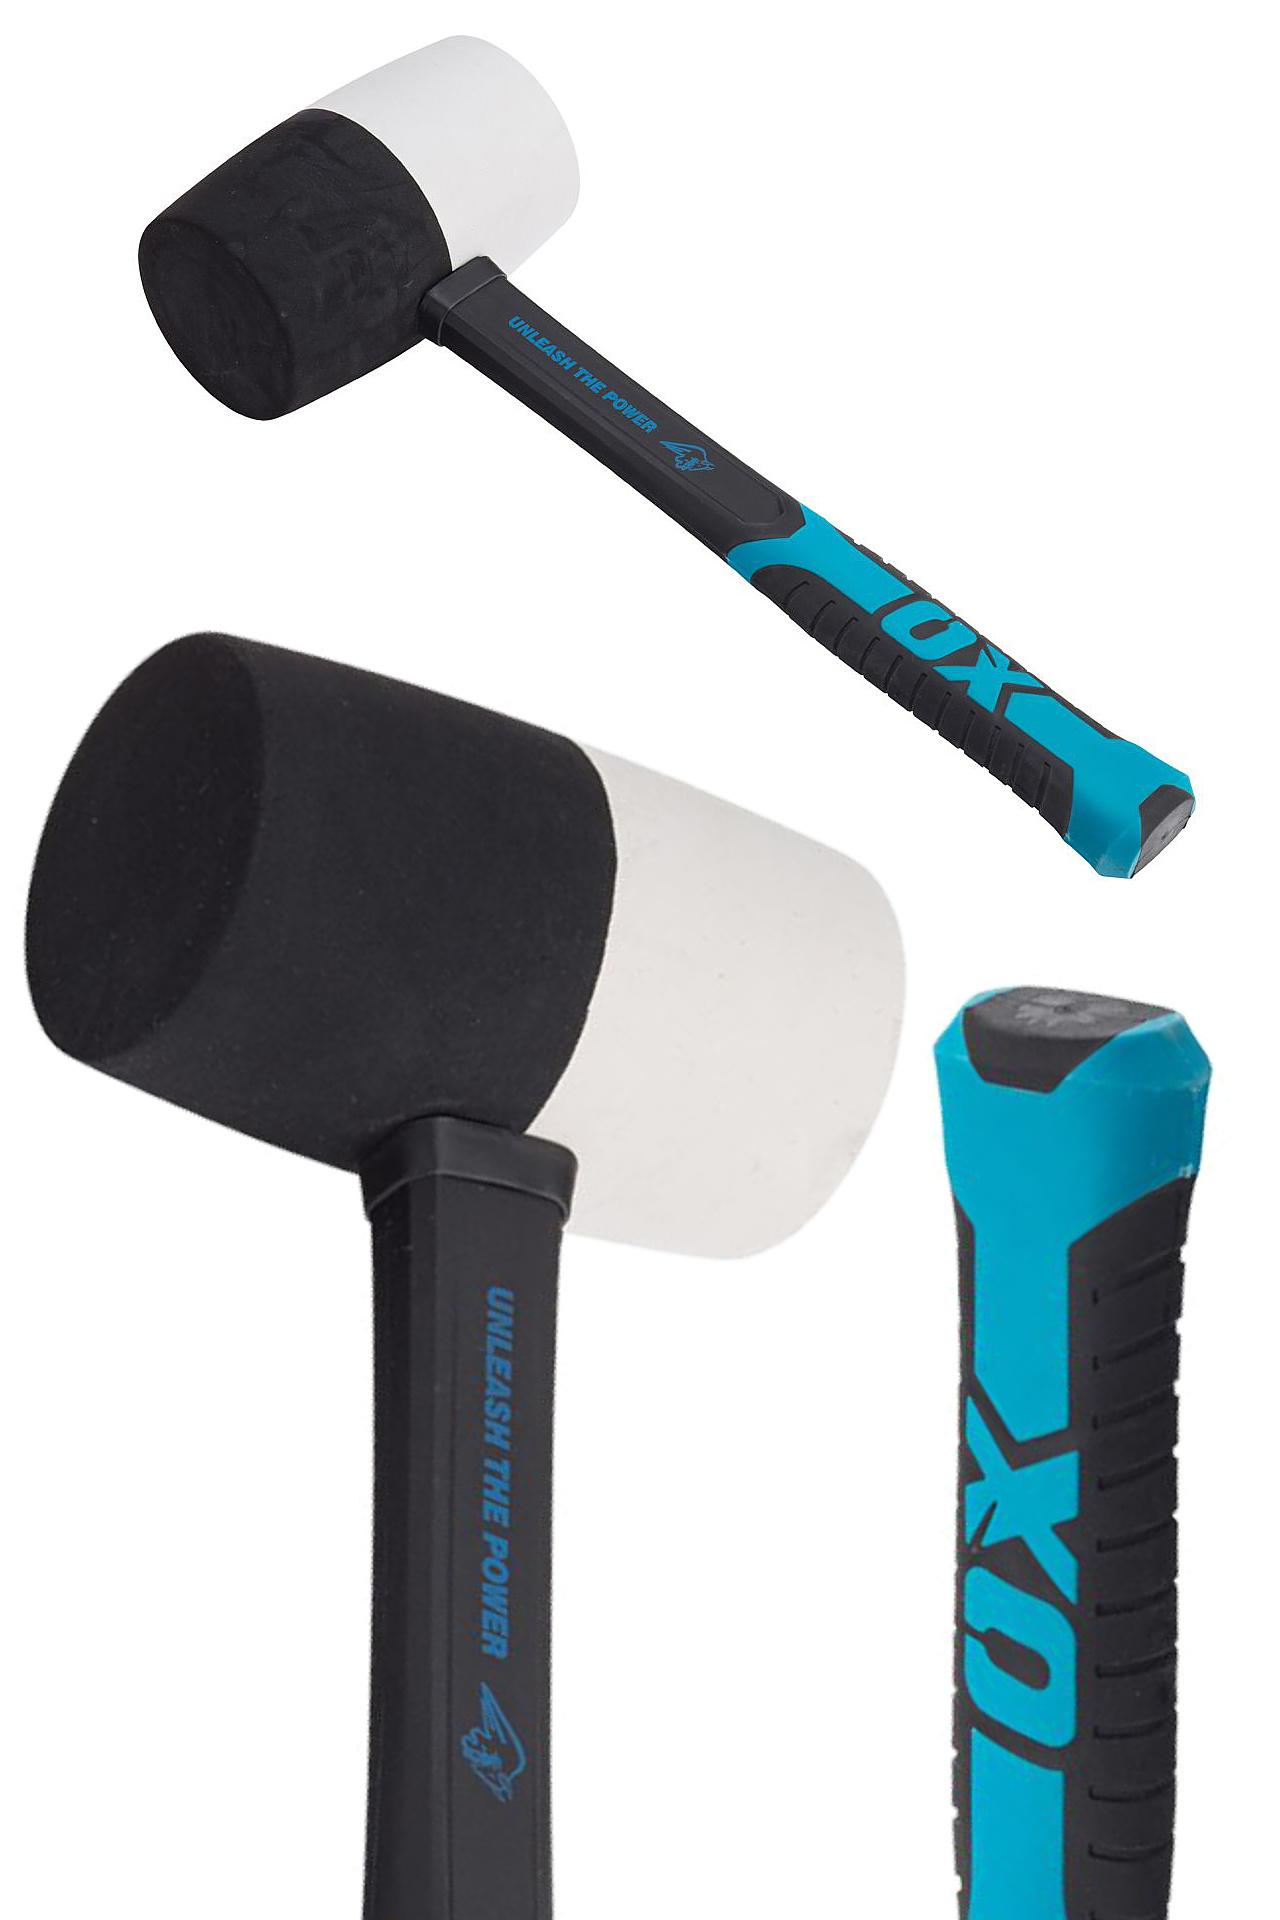 Ox Trade Combination Rubber Mallet